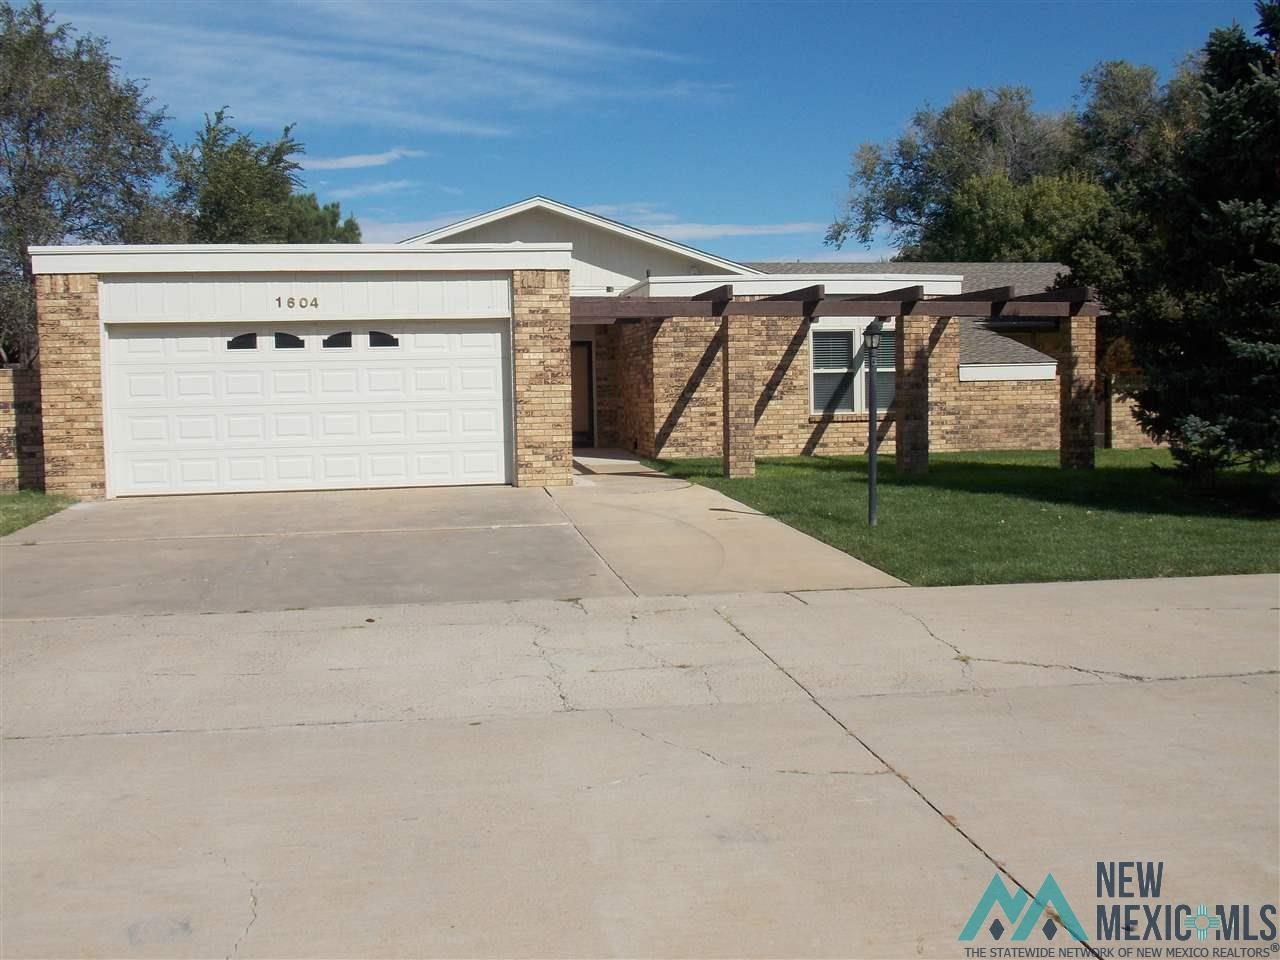 New mexico curry county clovis - 1604 Colonial Pkwy Clovis Curry County Nm 88101